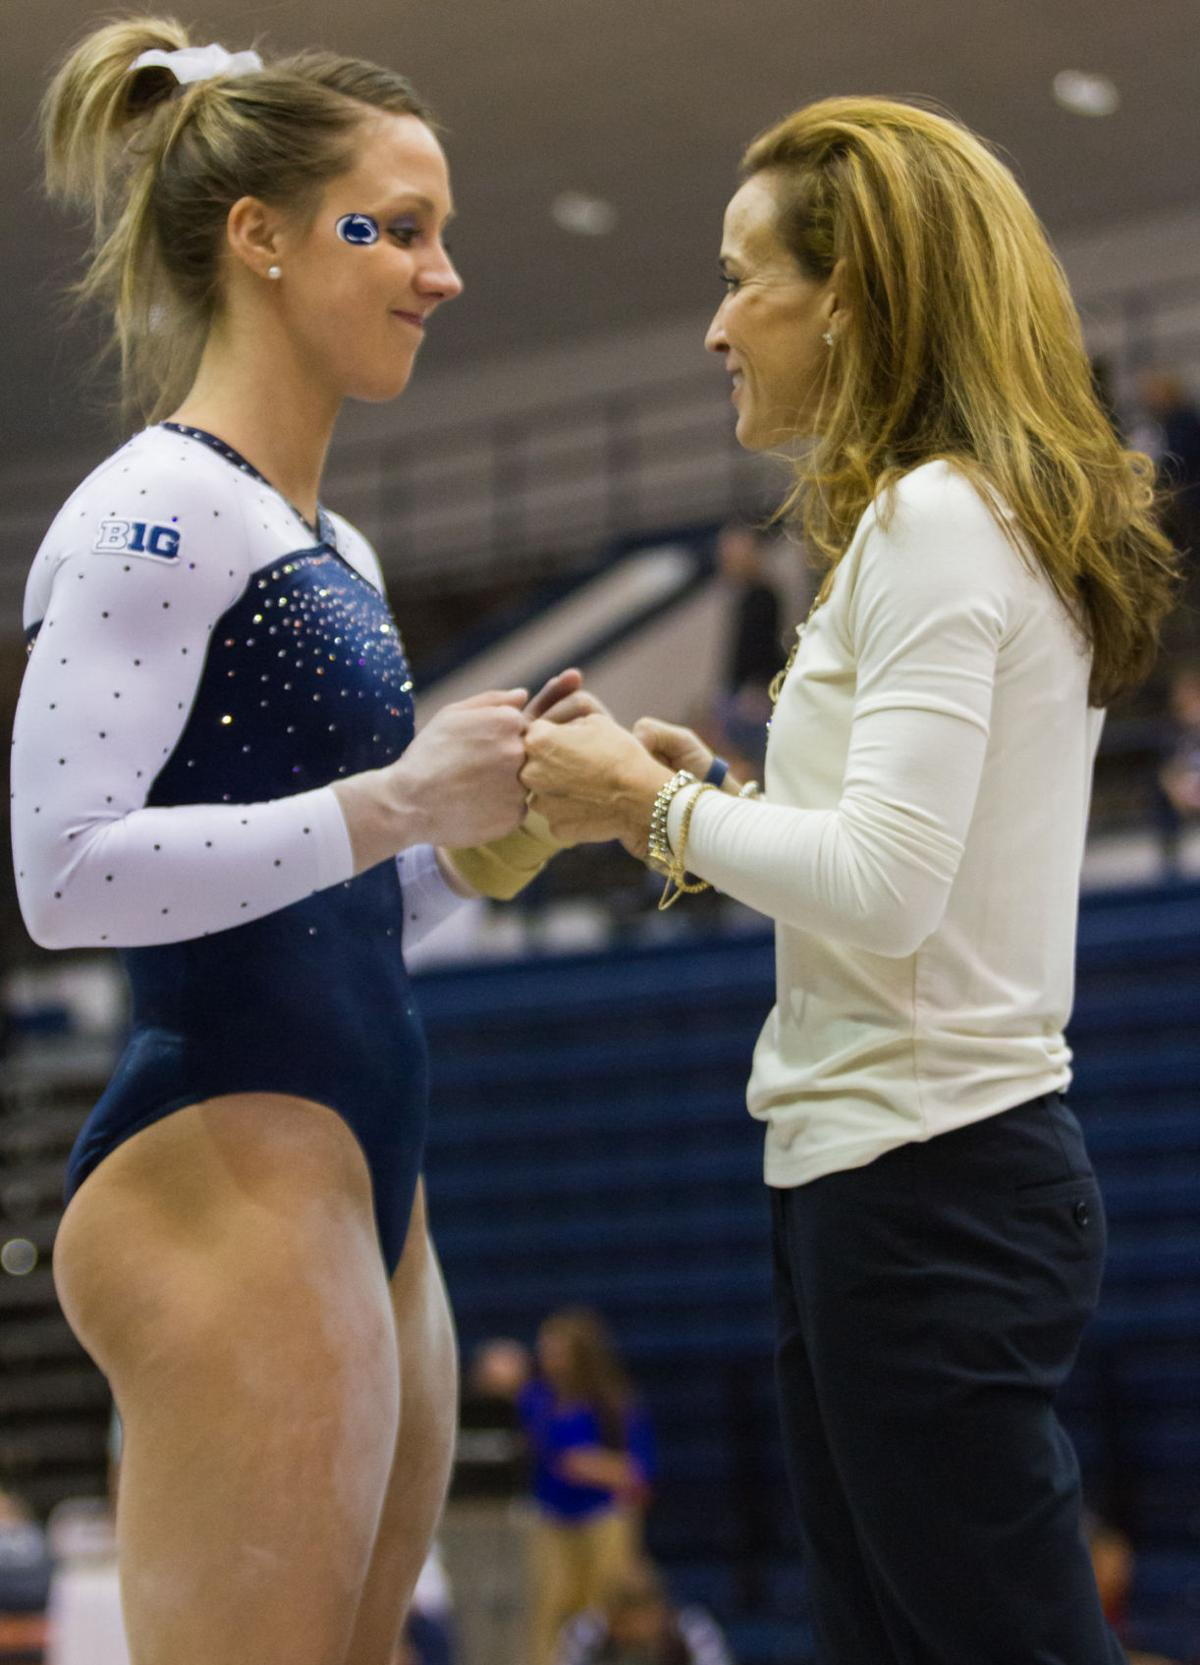 Penn State women's gymnastics heads to Oklahoma for NCAA Regionals | More Division I Sports ...